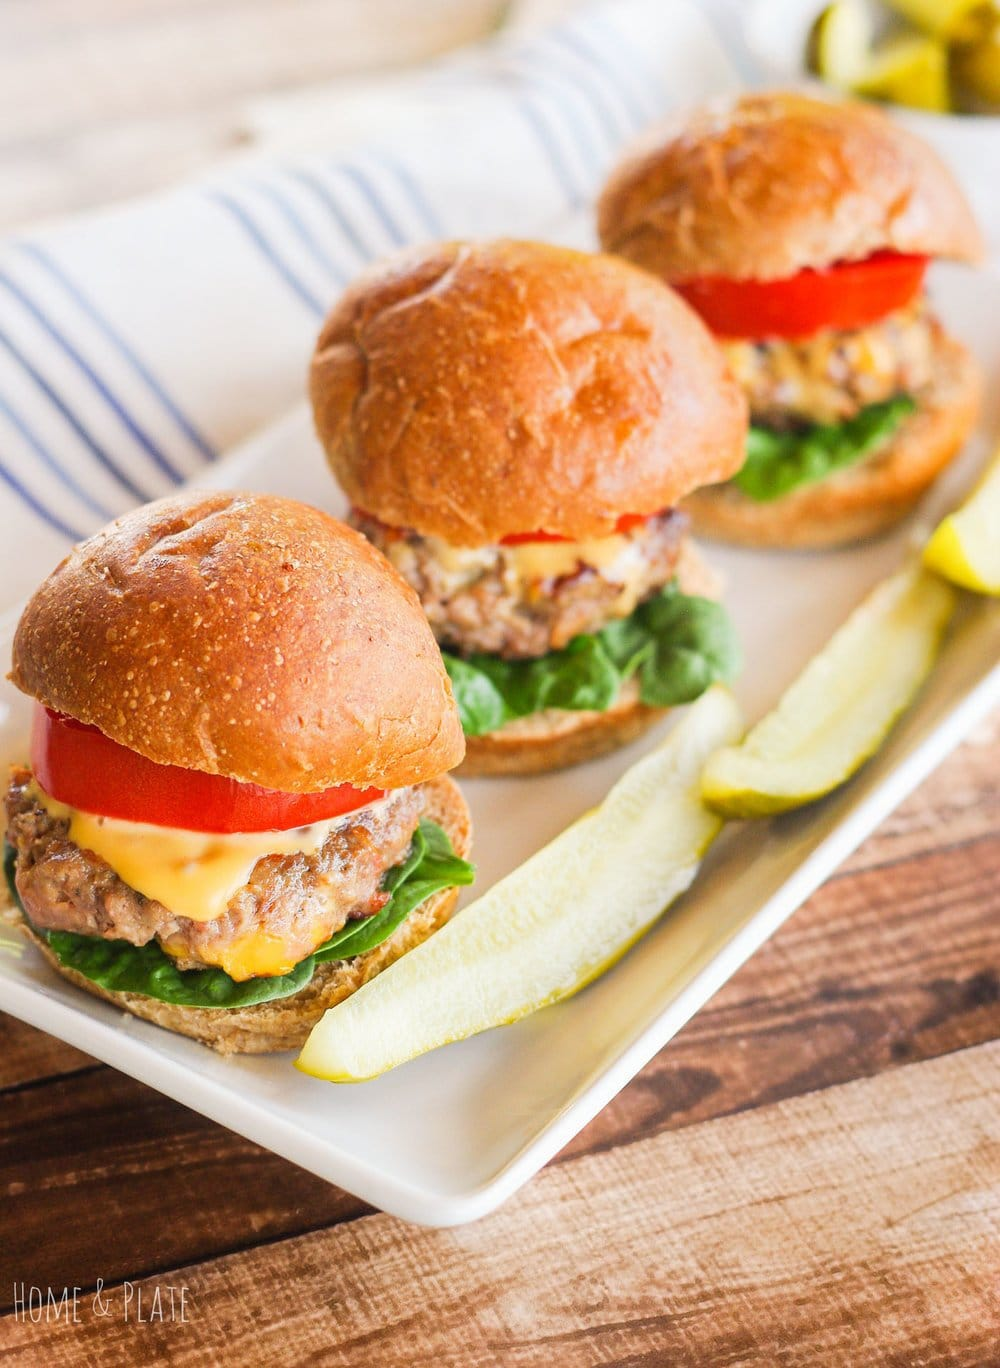 Halftime Sliders with Bacon & Cheddar Cheese | www.homeandplate.com | Serve up these halftime sliders made up of ground beef, salty bacon and sharp cheddar cheese right inside the patty. Perfect for any tailgate party or football get-together.